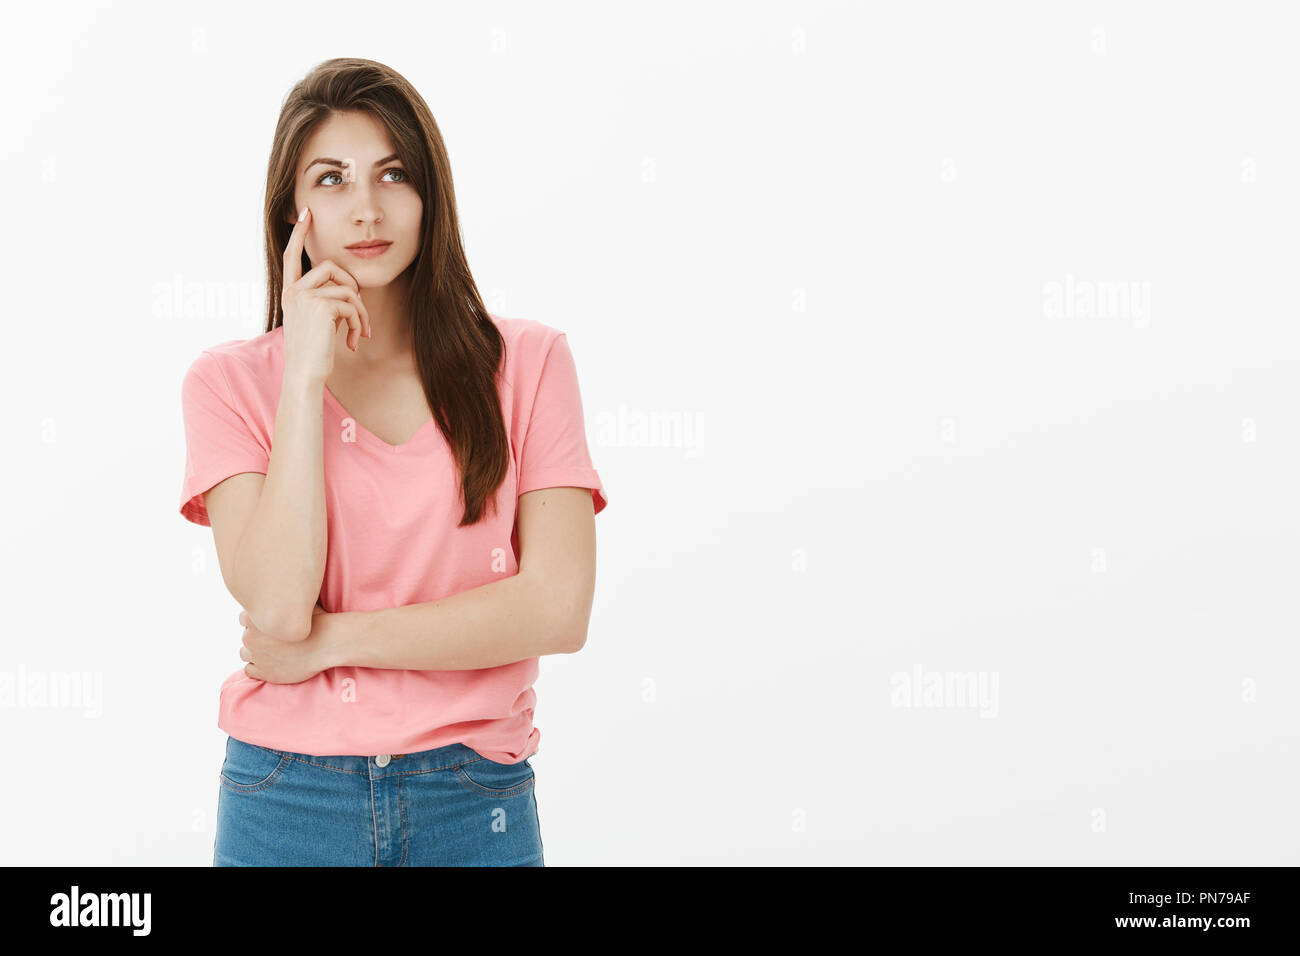 Determined smart attractive female student in pink t-shirt, holding index finger on temple and smiling while gazing at upper right corner, dreaming or making up ideas about future summer vacation Stock Photo